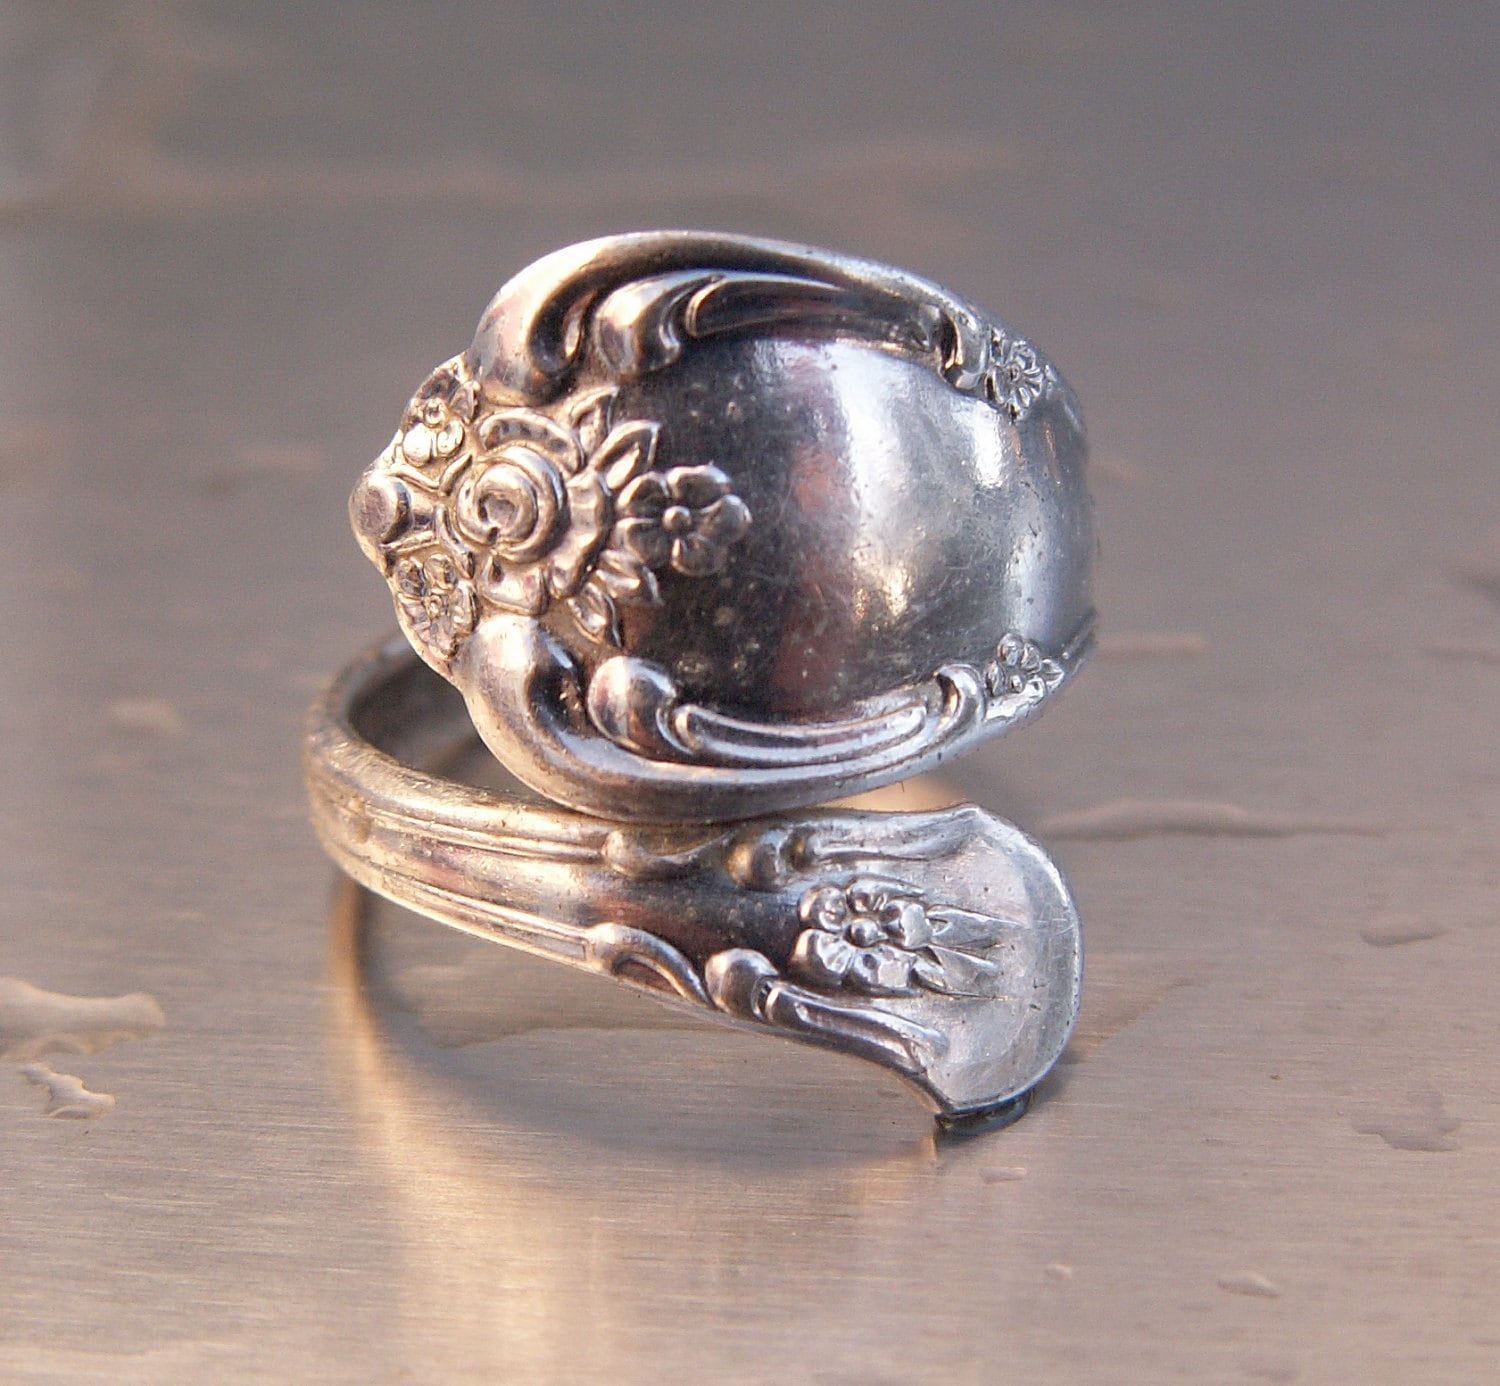 Oneida Spoon Ring